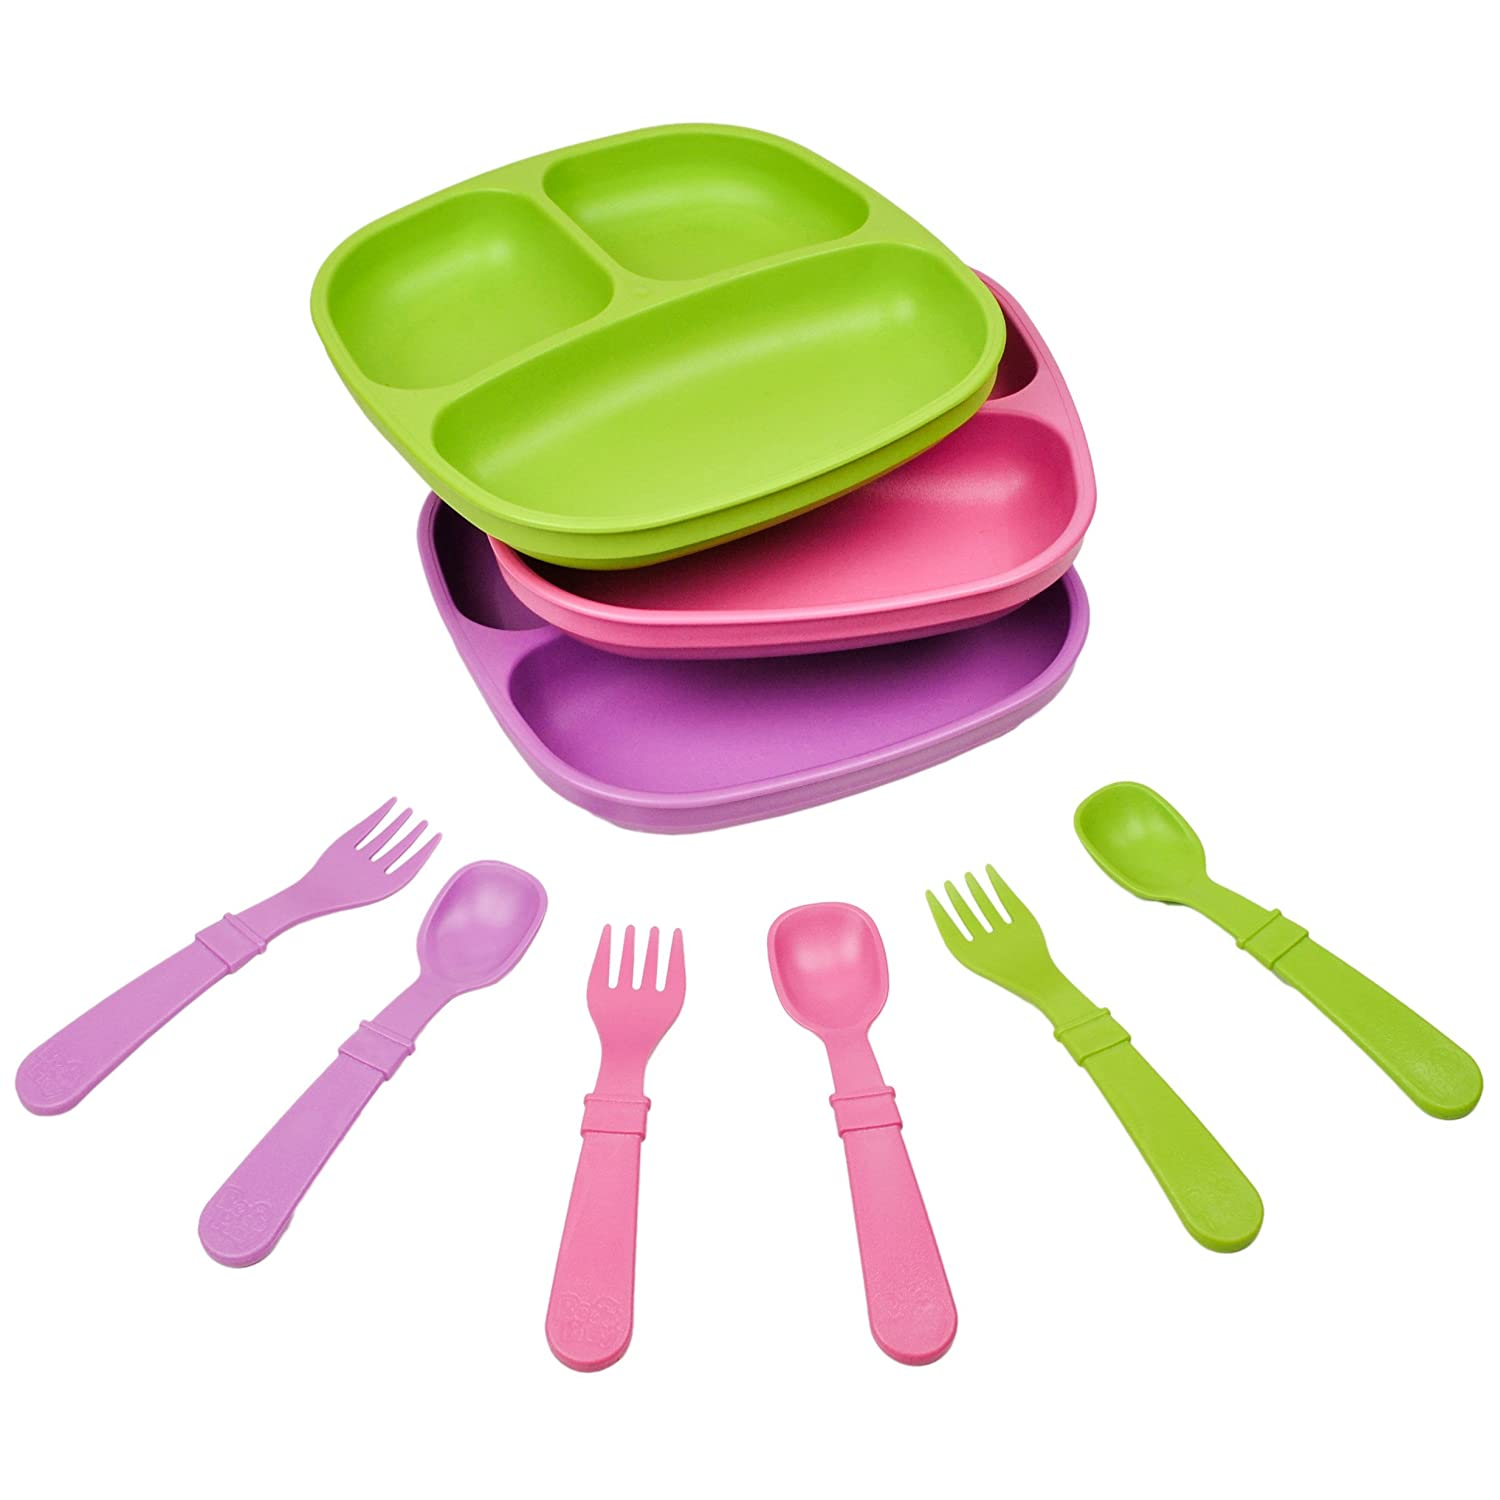 Lime Green Aqua Re-Play Made in The USA Dinnerware Set Under The Sea 3pk Divided Plates with Matching Utensils Sky Blue